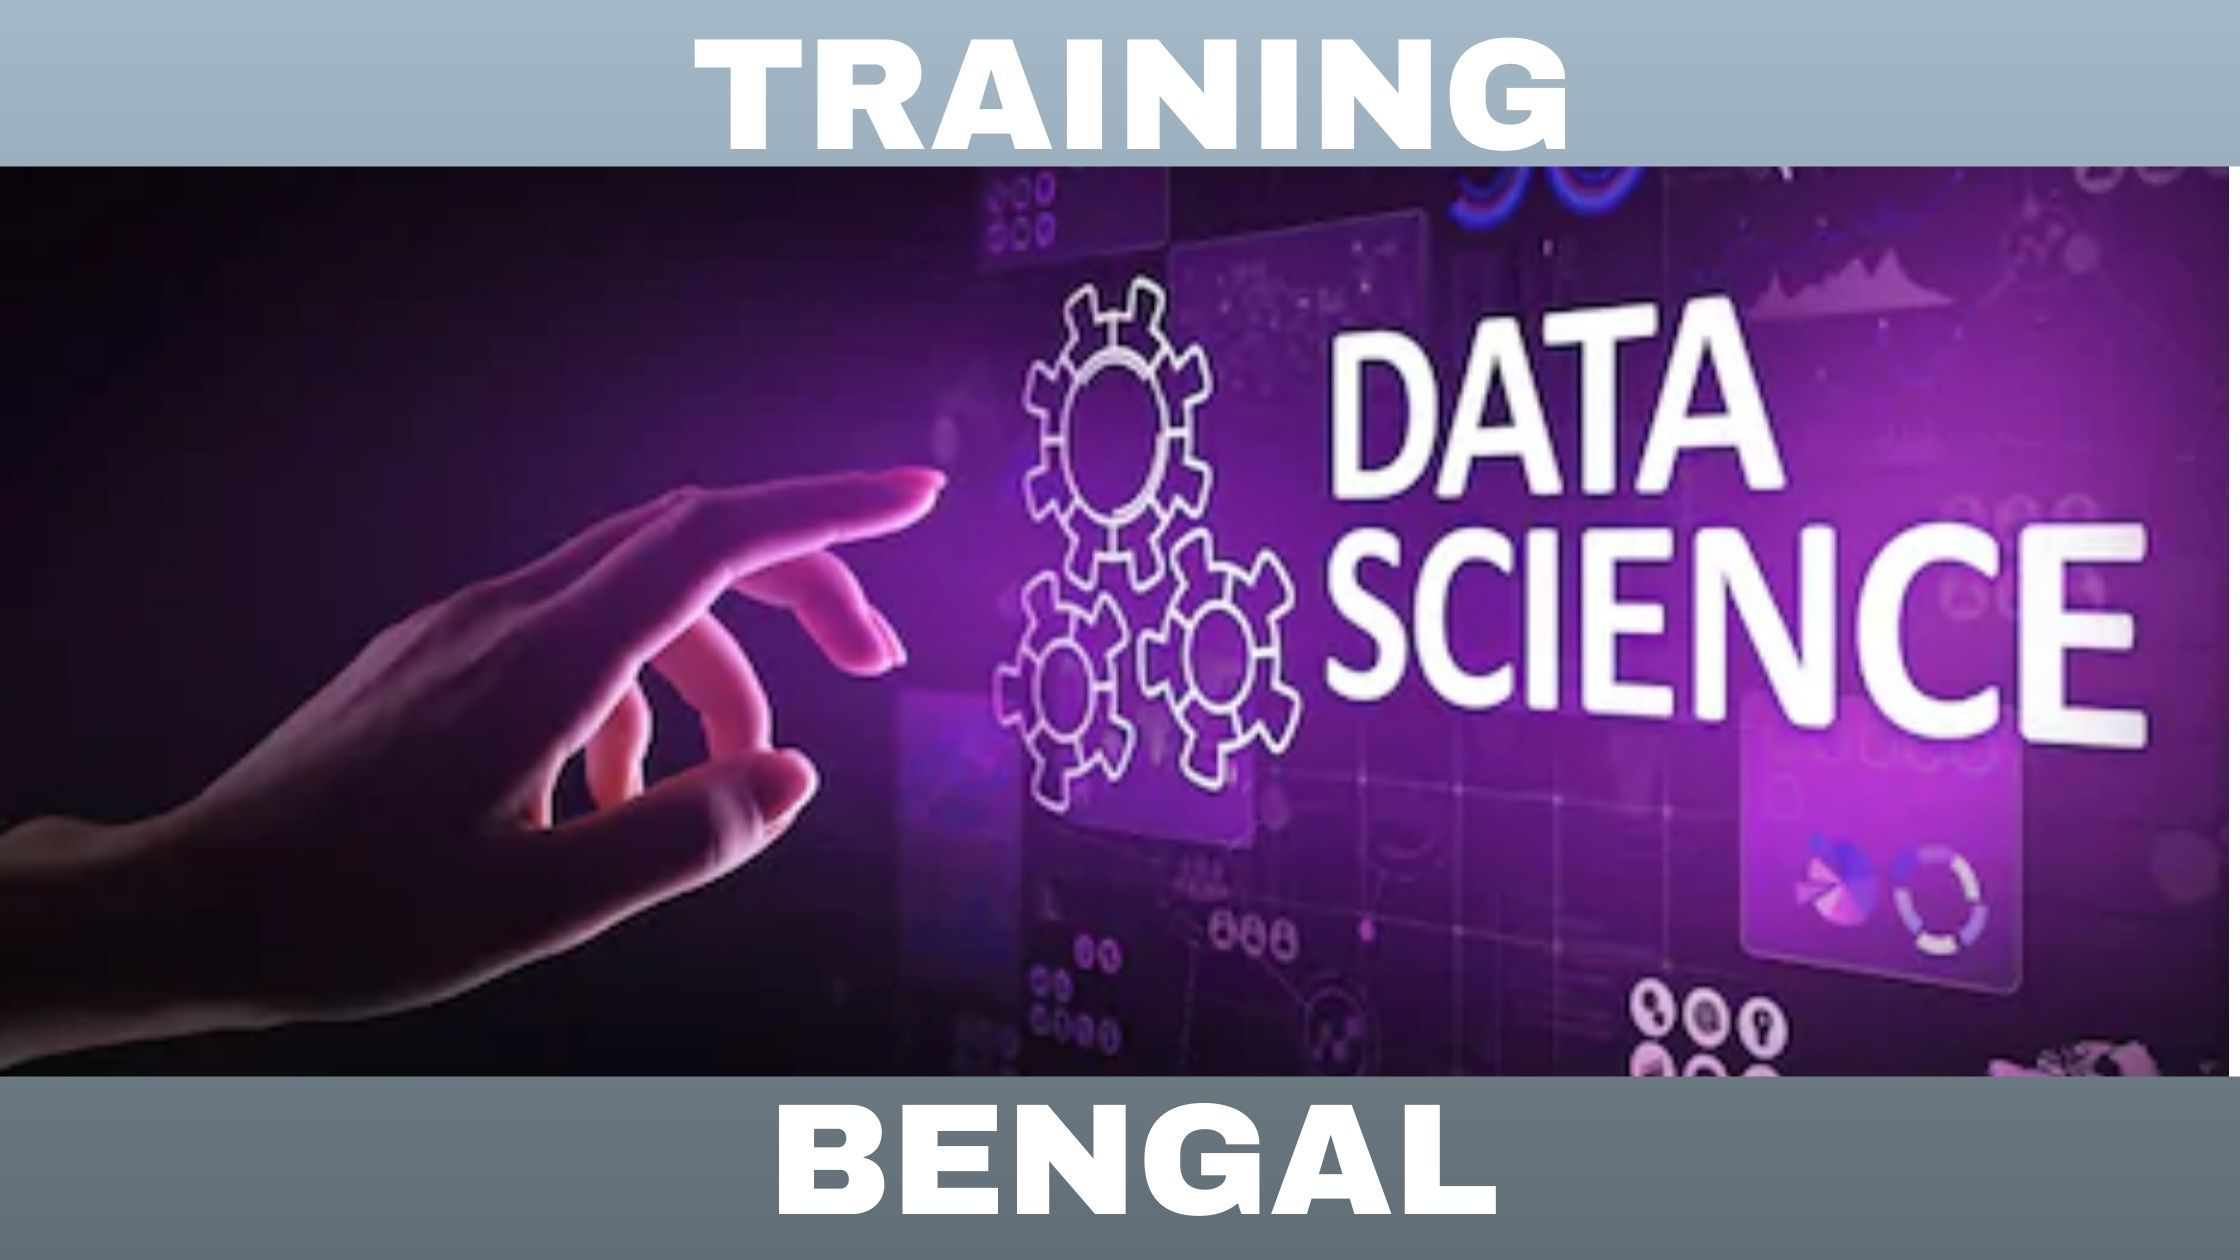 data_science_in_bengal-background.jpeg